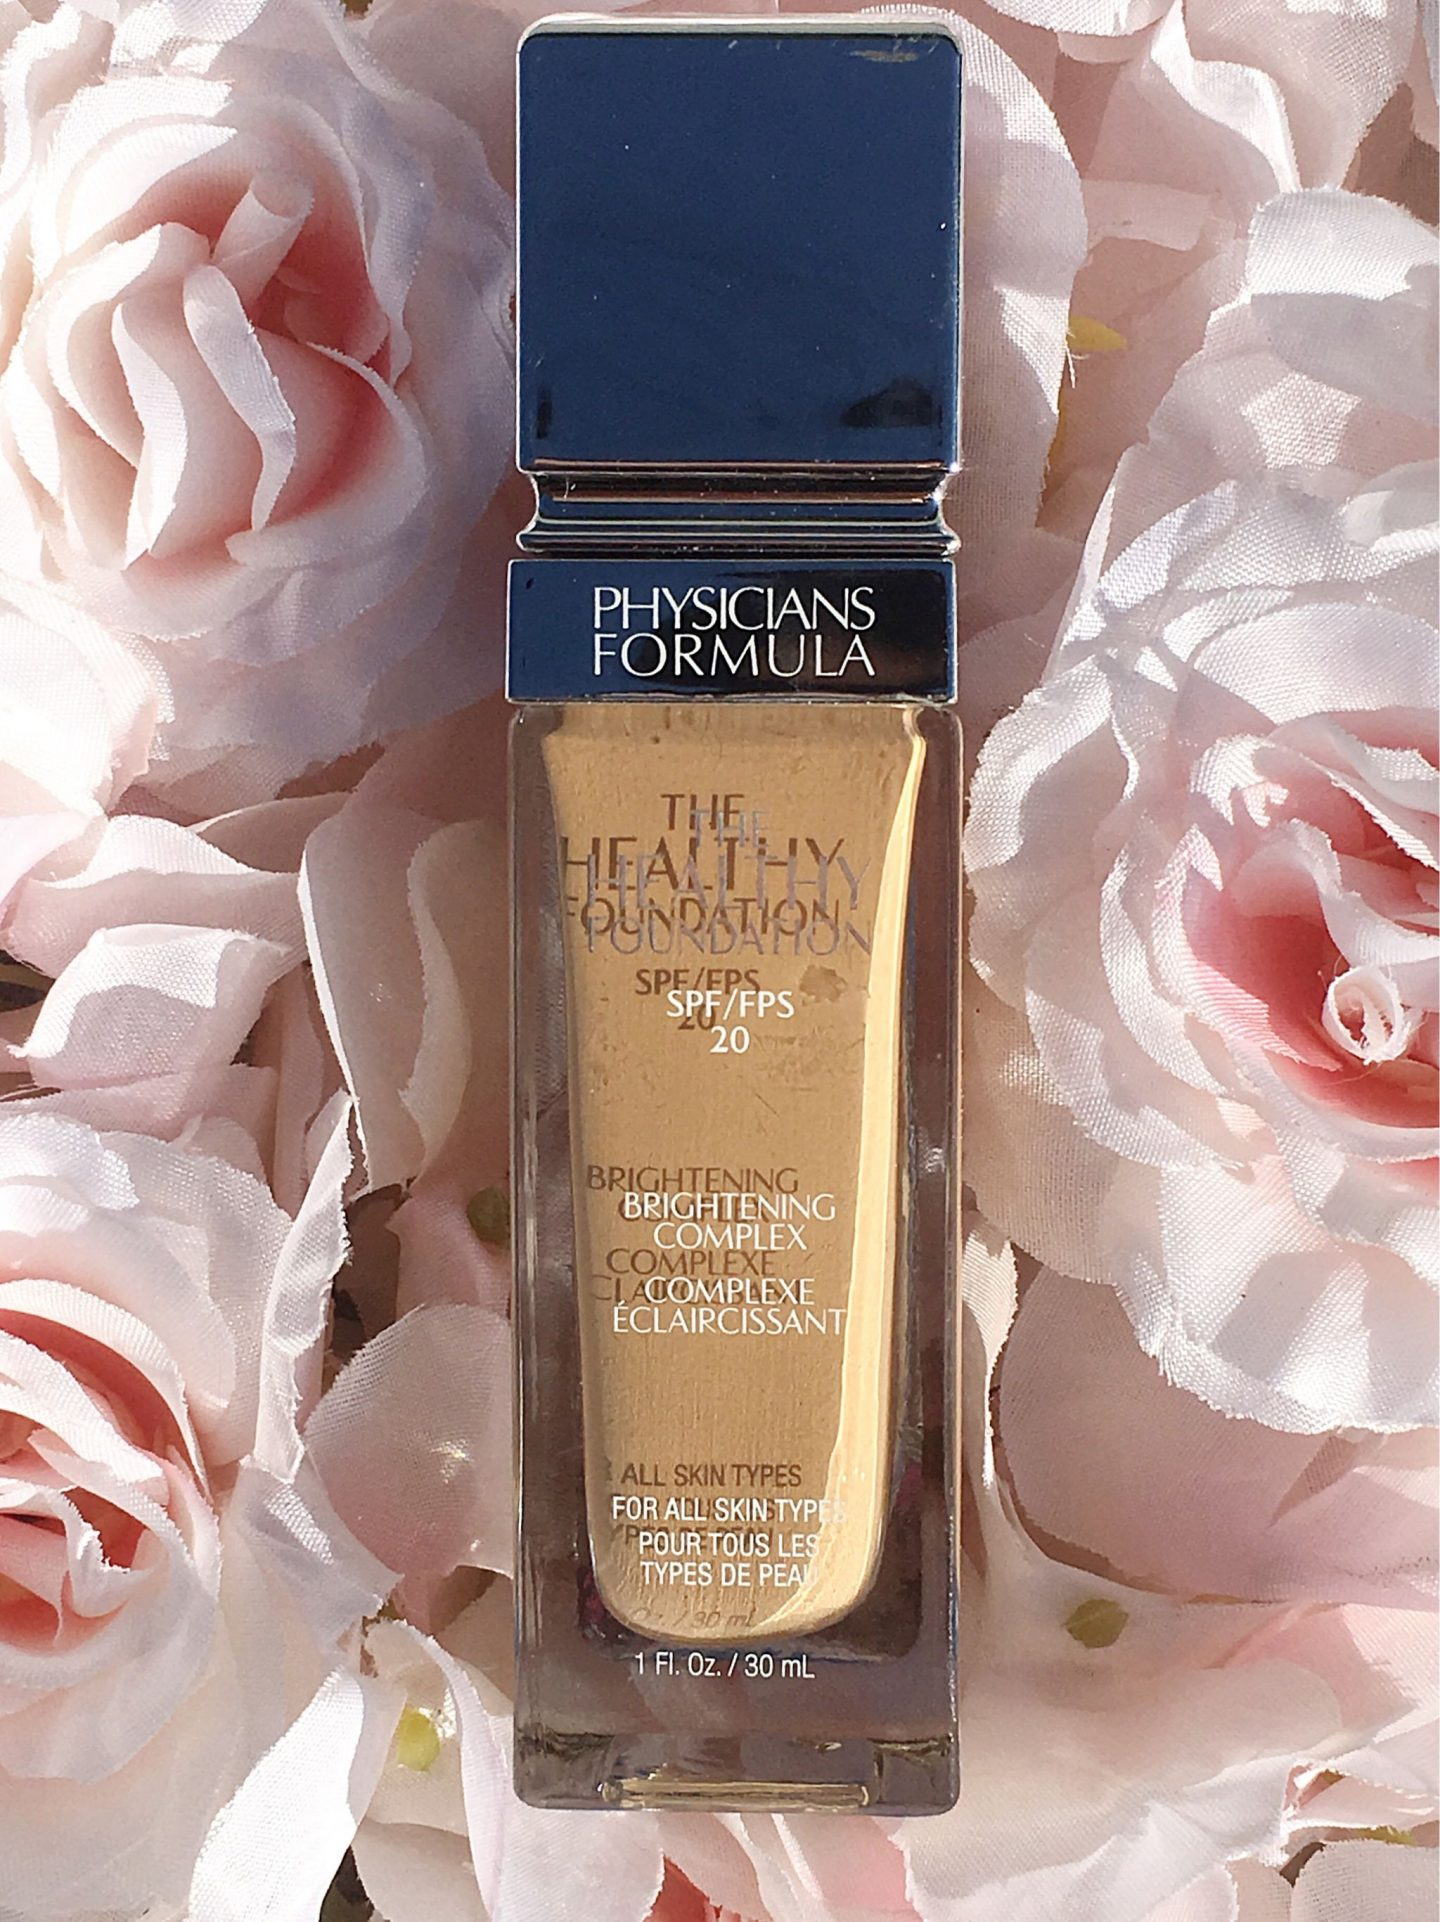 Physicians Formula The Healthy Foundation Review